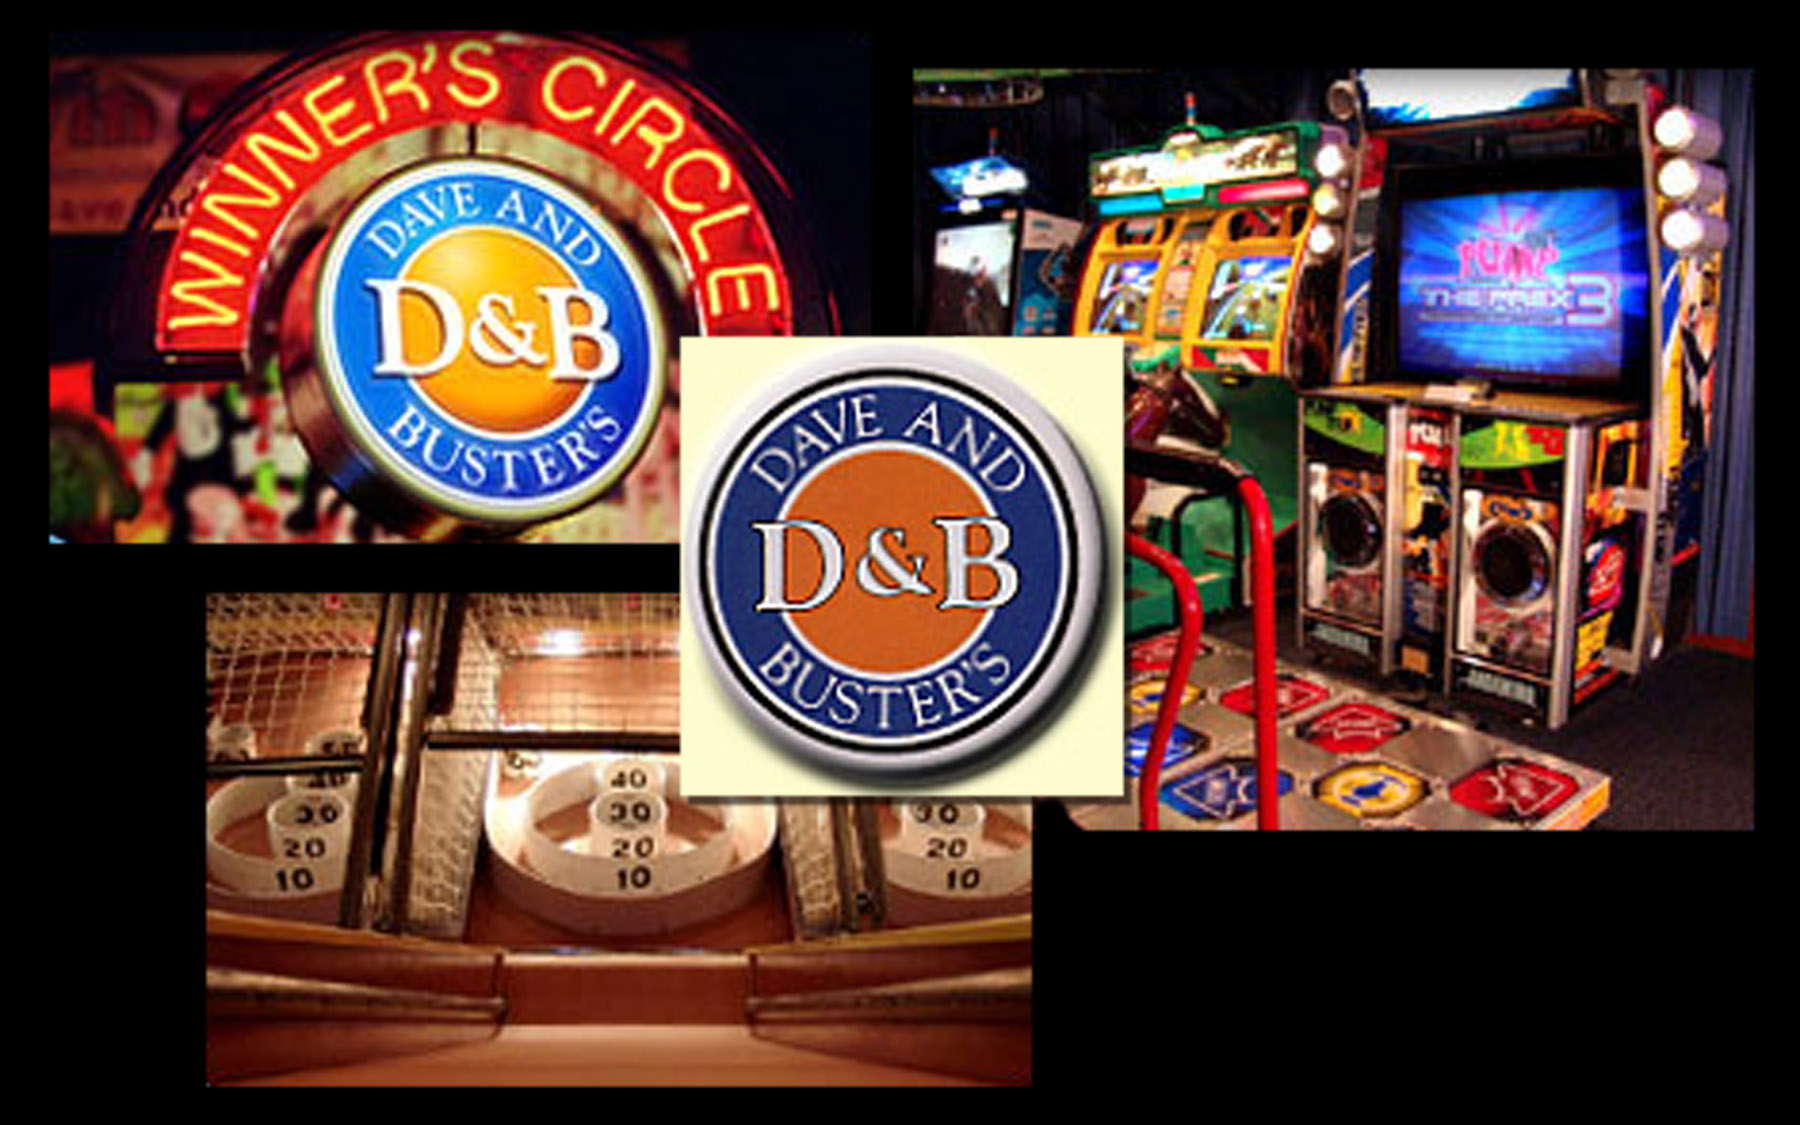 Dave & Buster's in Chicago, IL